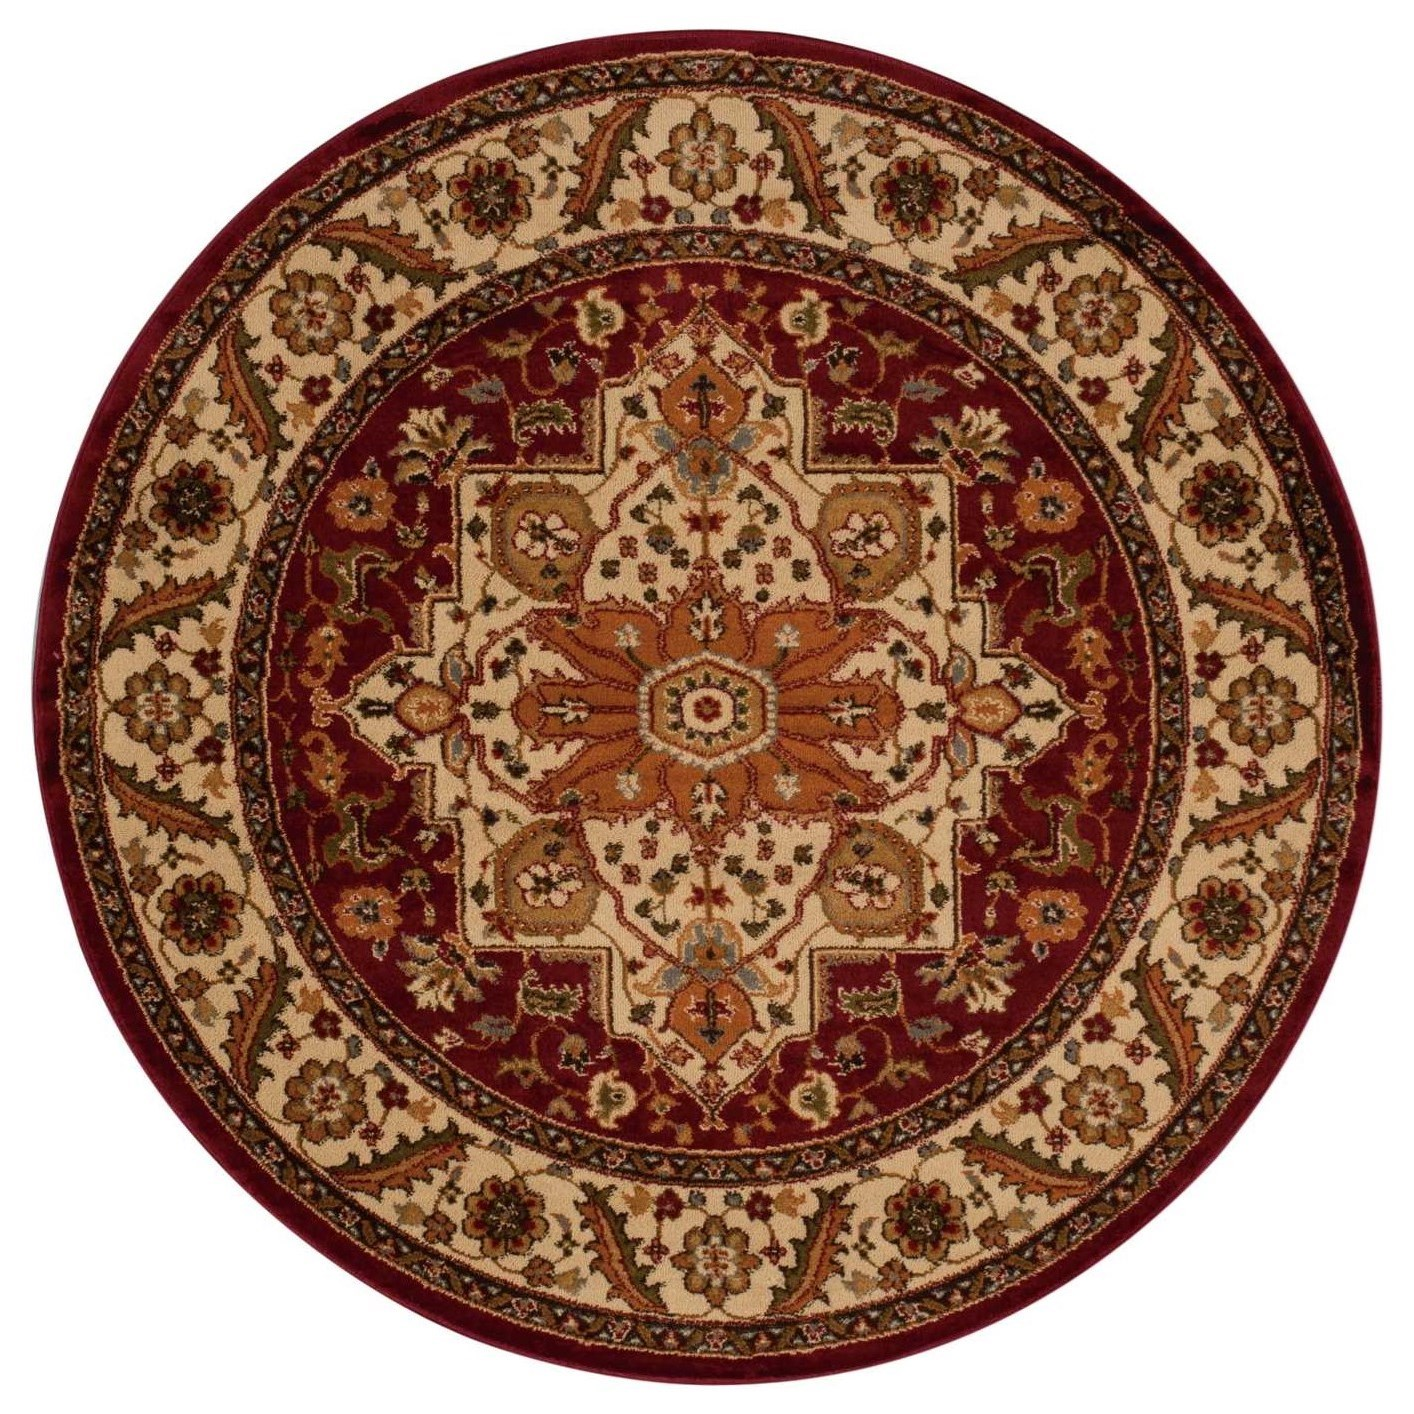 "Paramount 5'3"" x 5'3"" Gold Round Rug by Nourison at Home Collections Furniture"